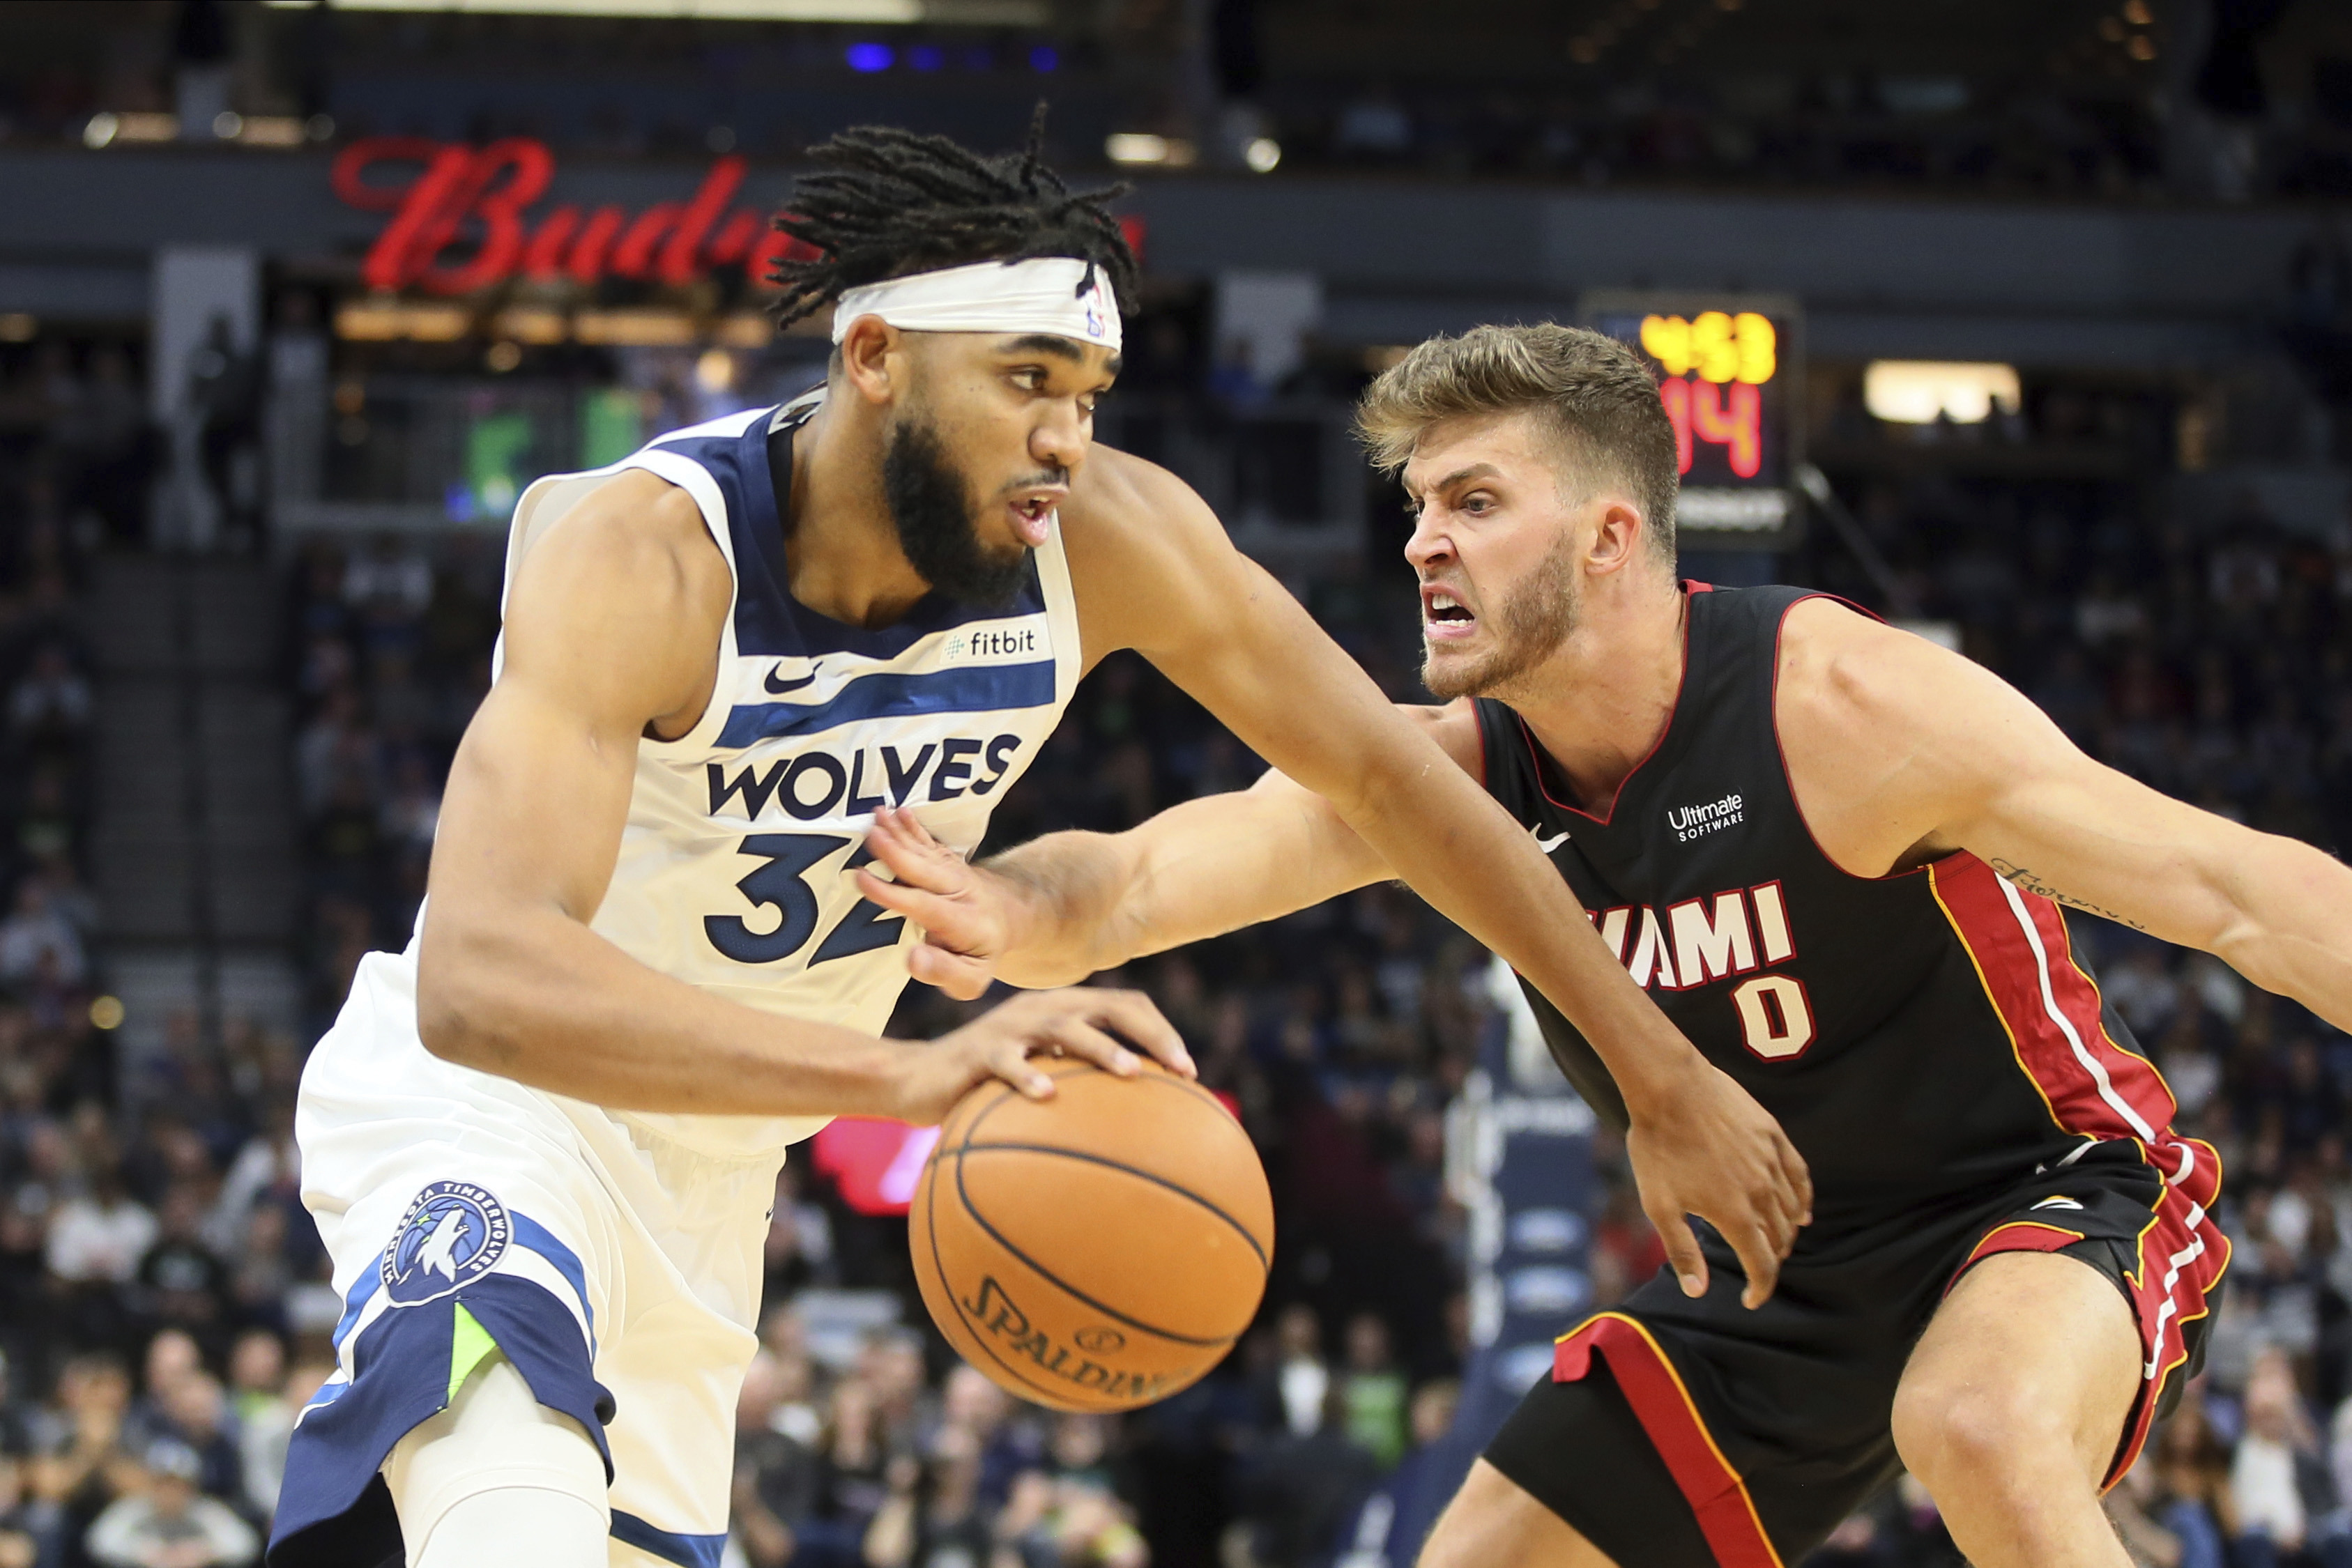 Wiggins leads Wolves past Heat 116-109 with late 3 barrage